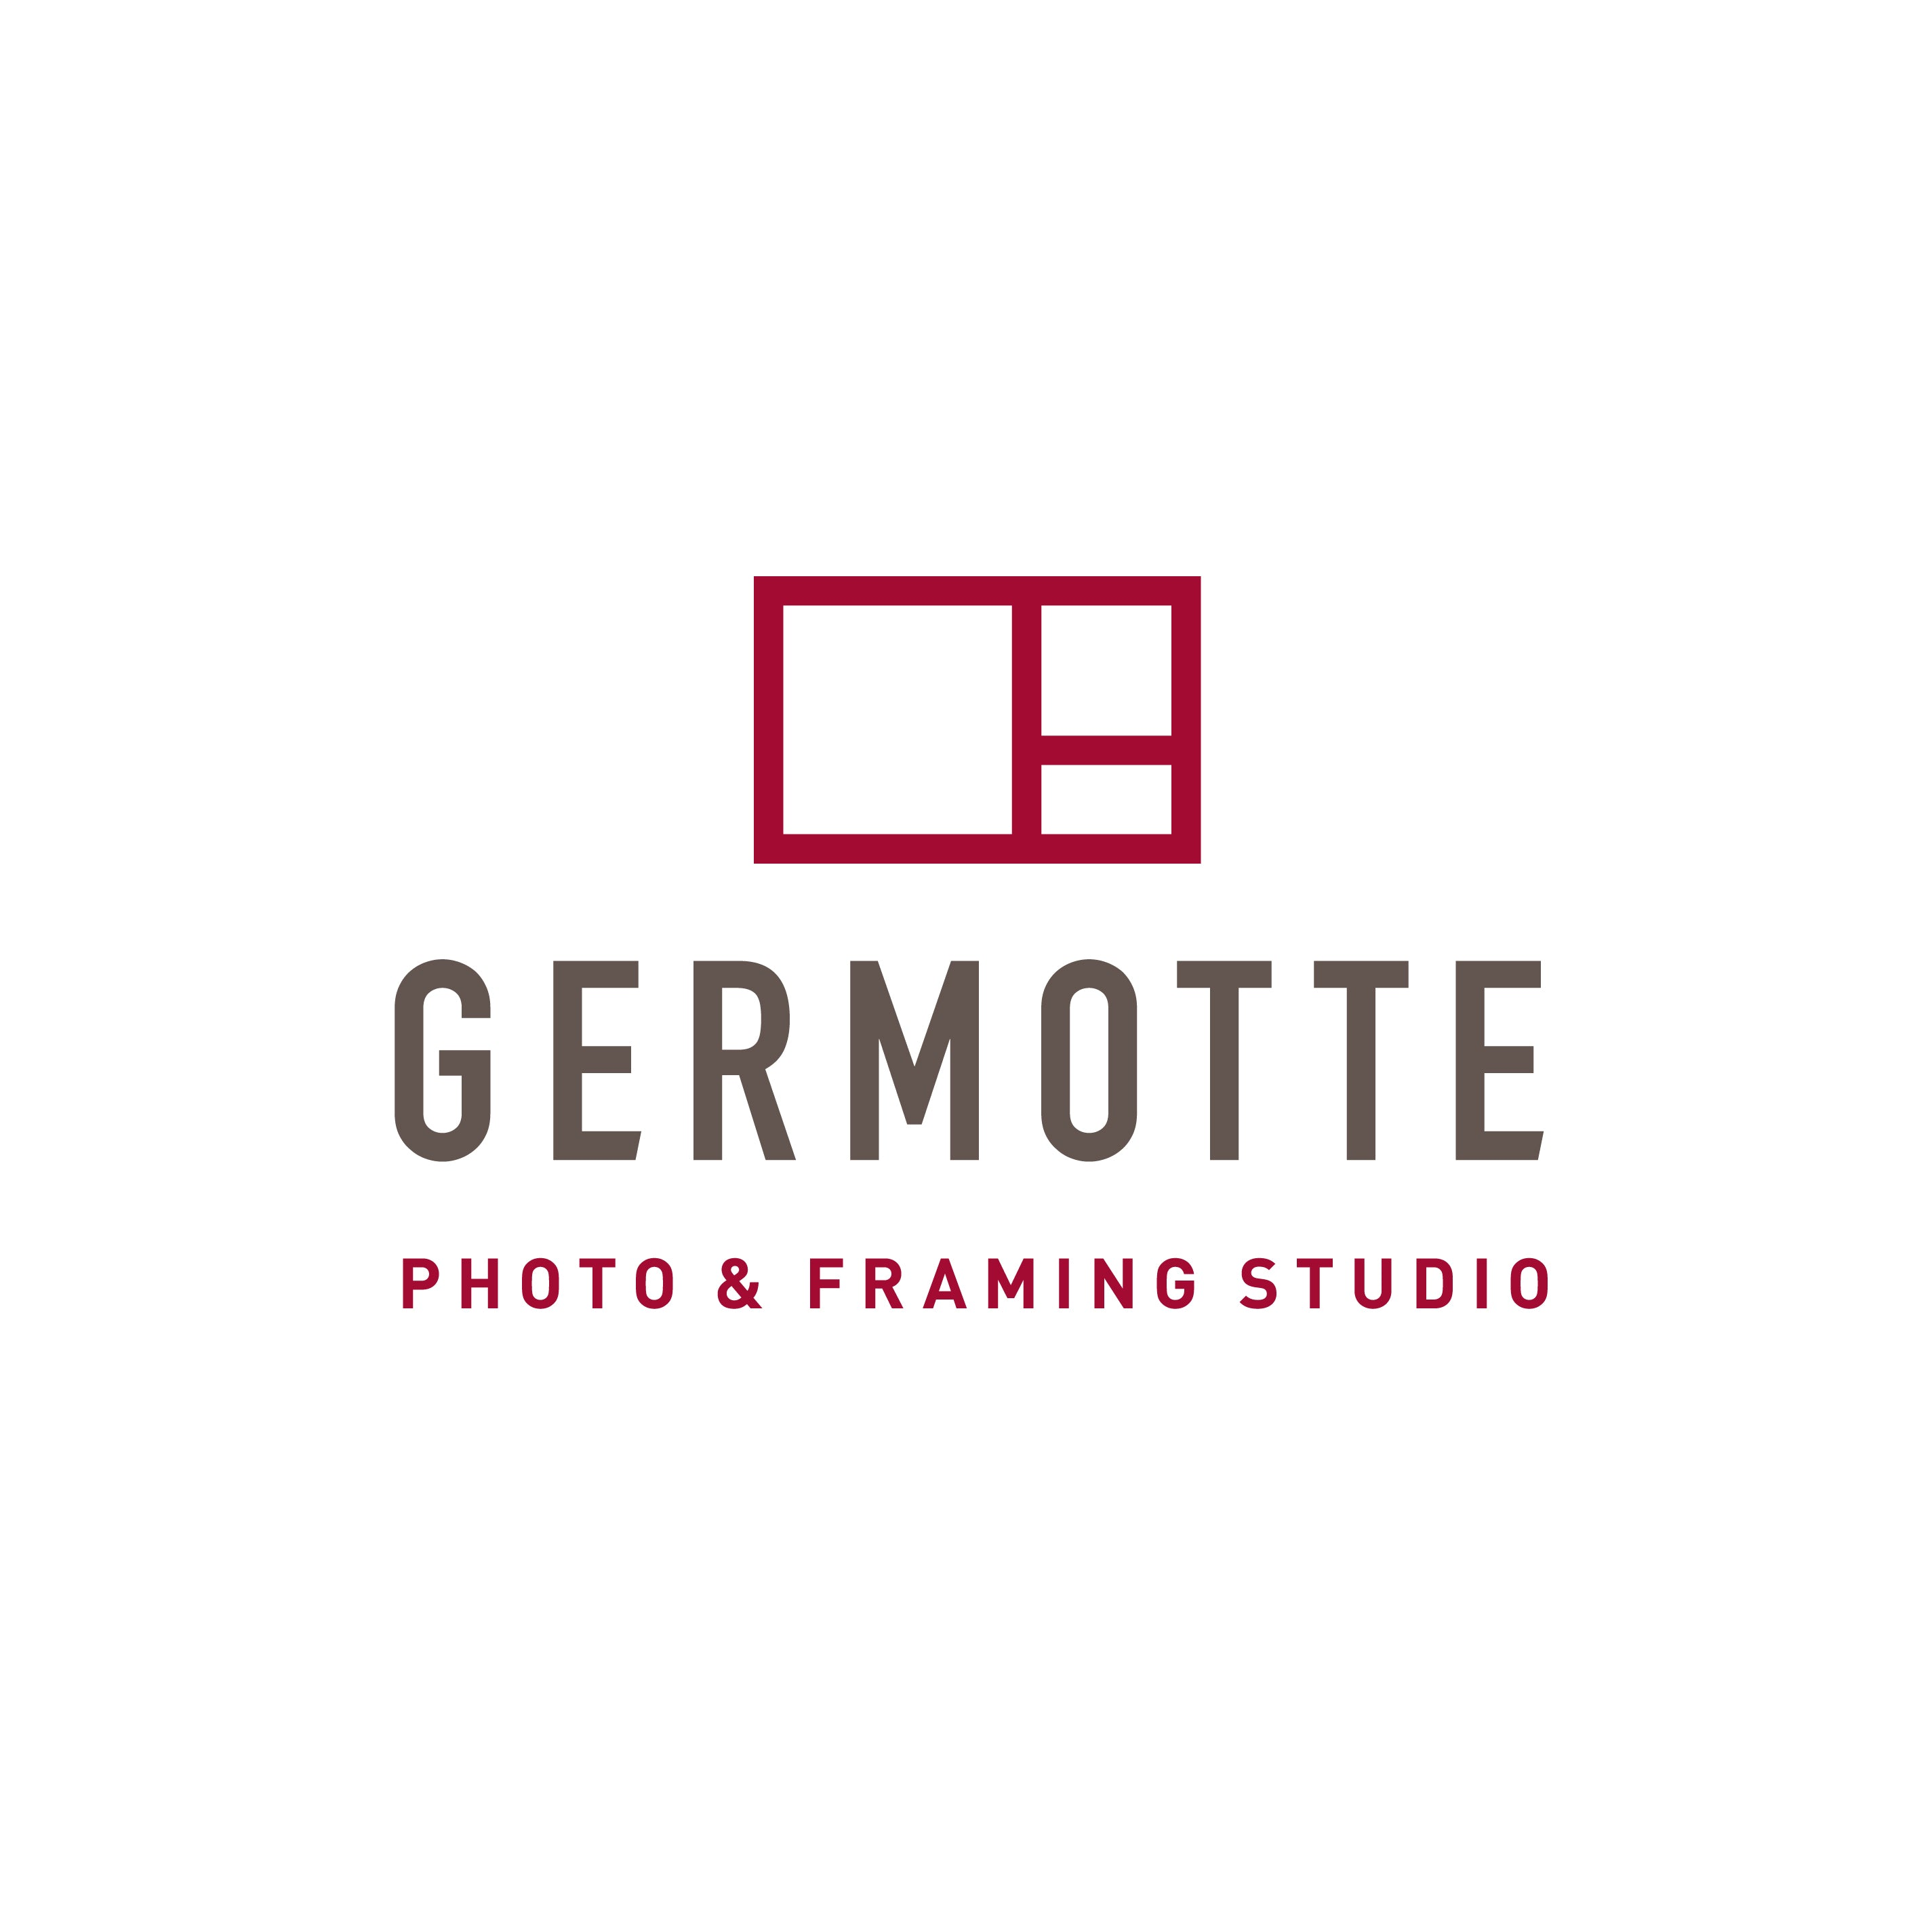 Germotte Photo & Framing Studio